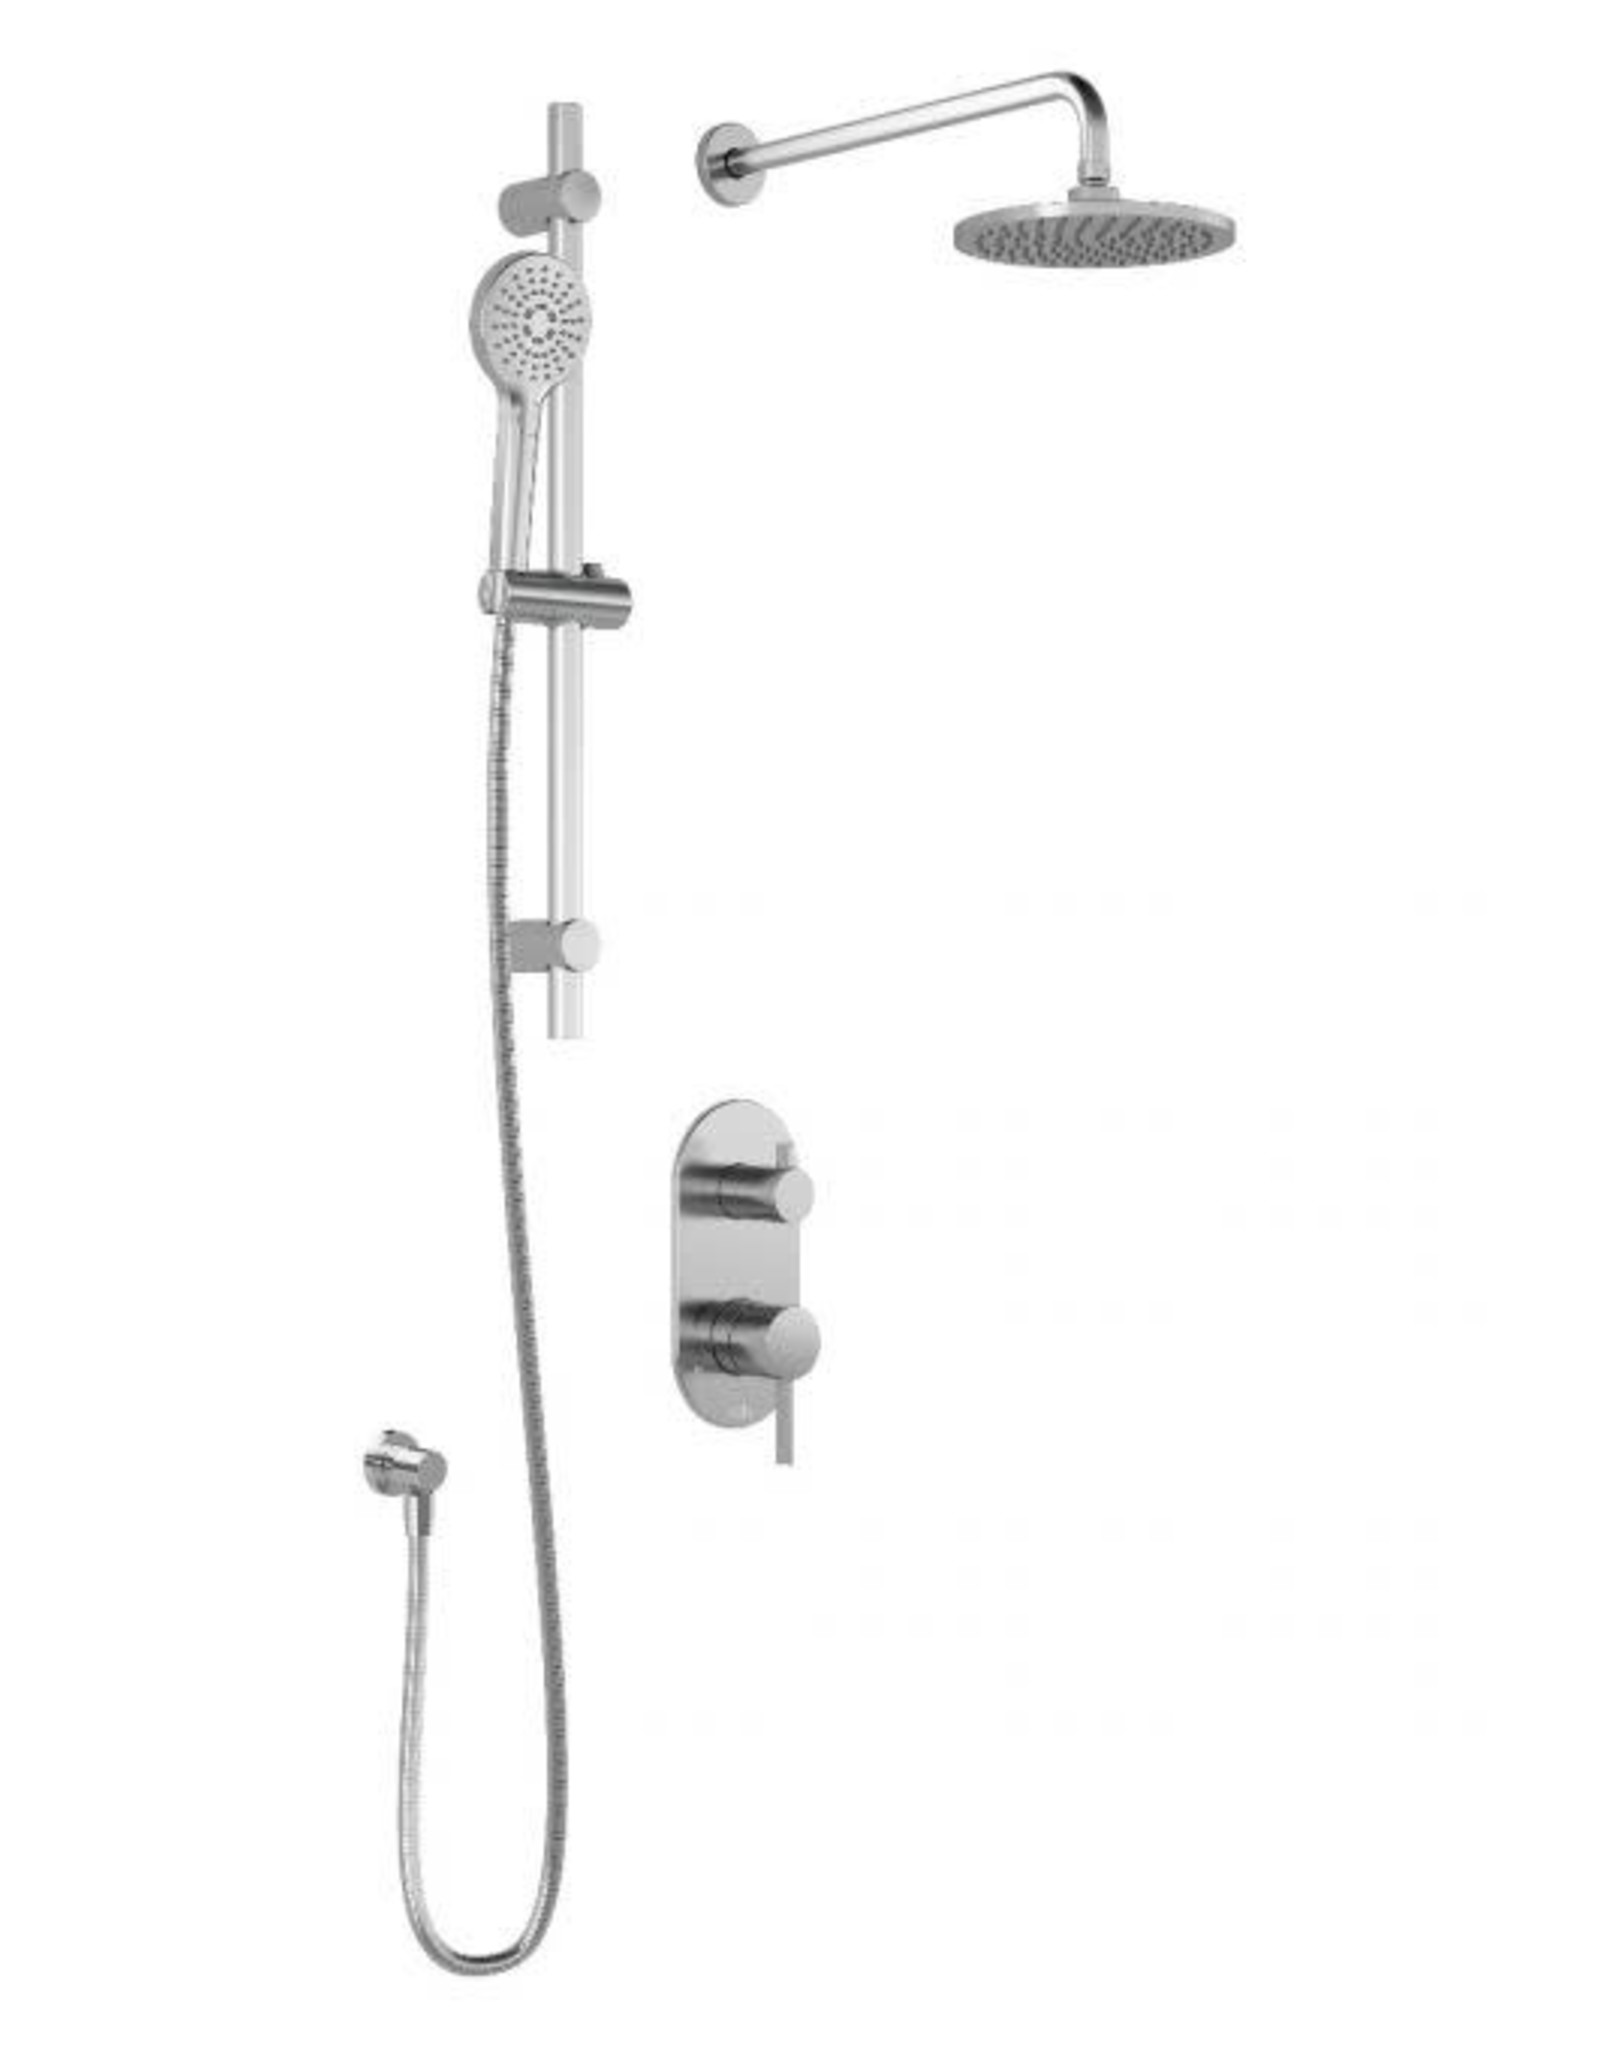 Kalia Kalia Basico PB4- Rain Showerhead w/ Hand Shower- Chrome